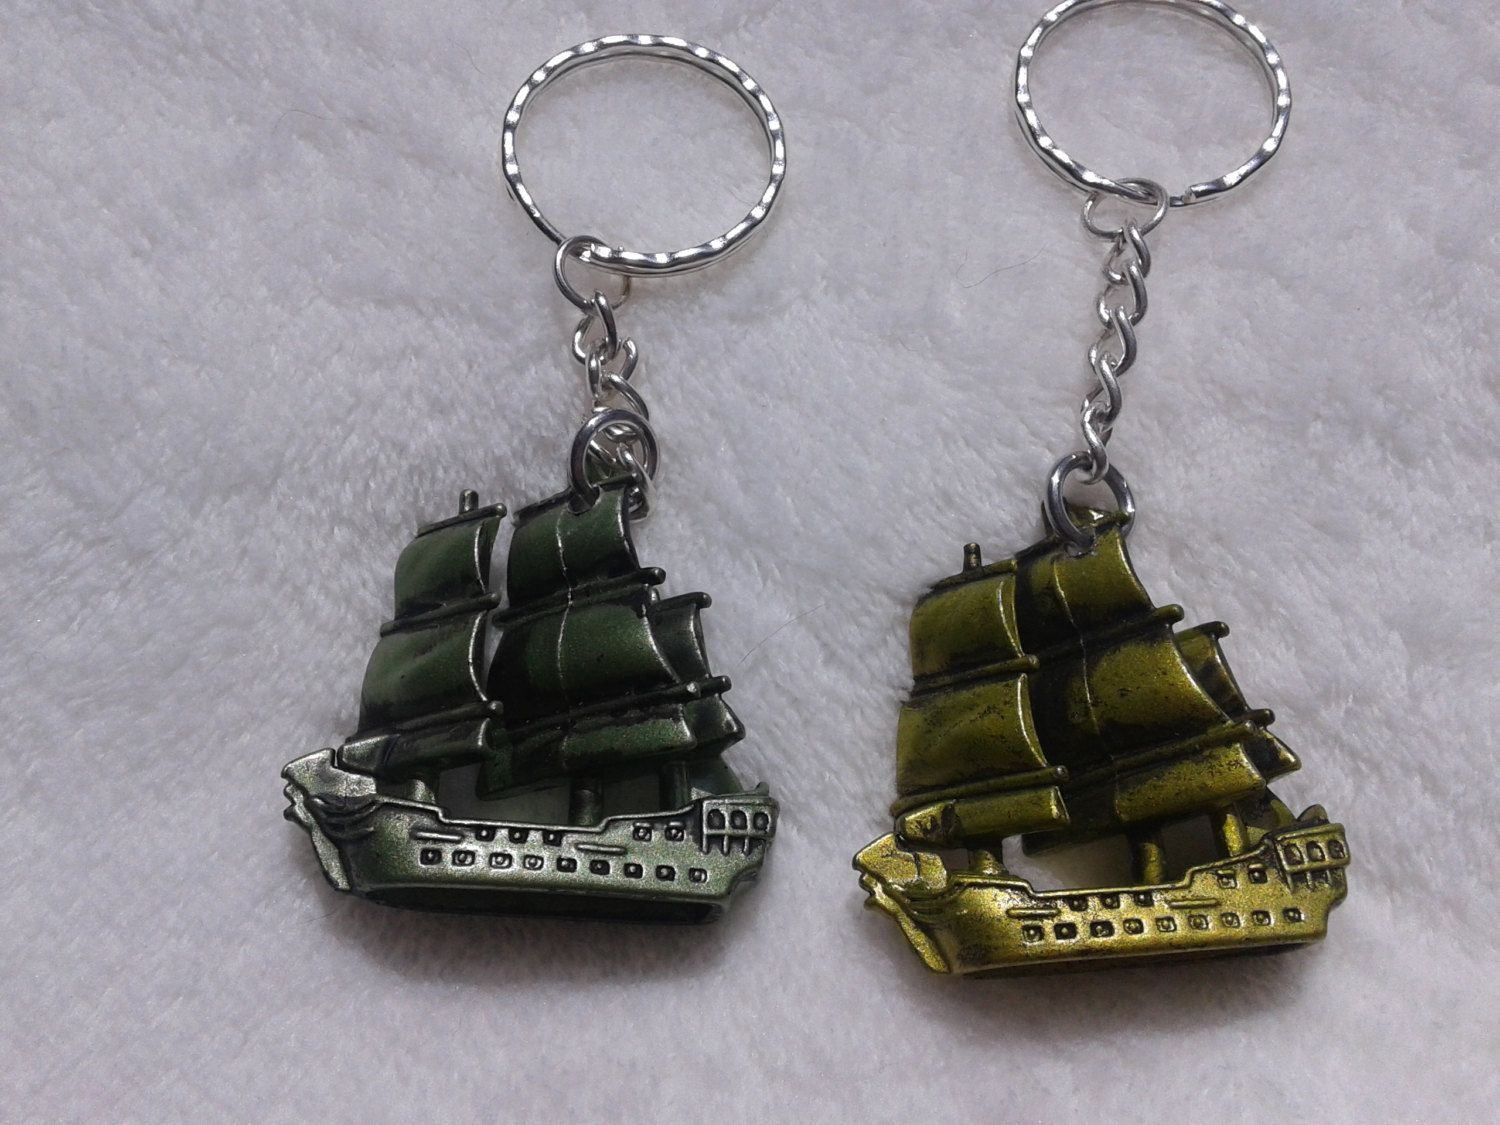 2 pc pirates of the caribbean black pearl keychain keyring